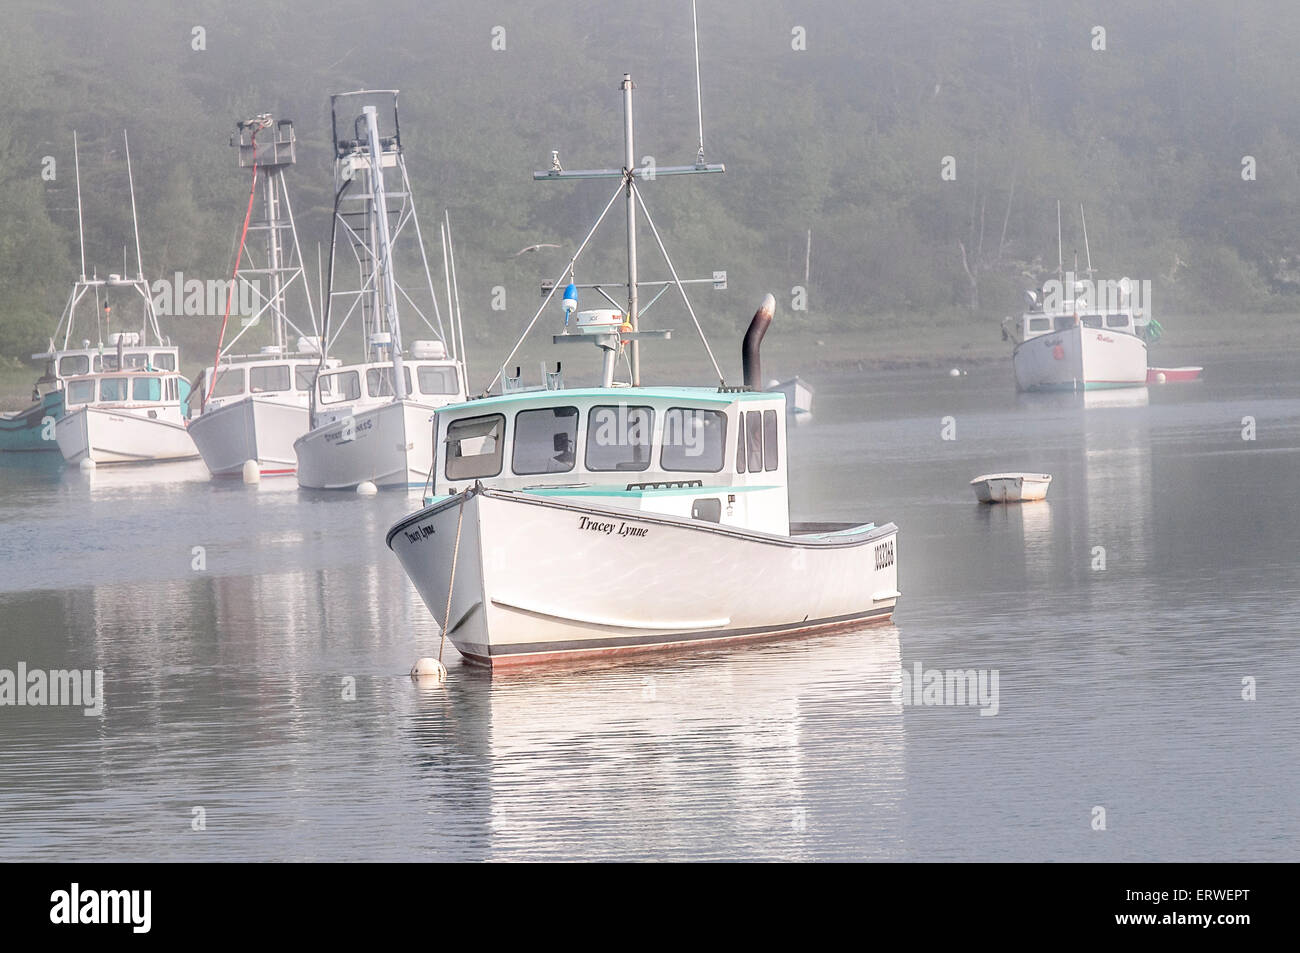 This foggy fleet of fishing boats sit at their mooring until the fog burns off enough so the fishermen can set out - Stock Image